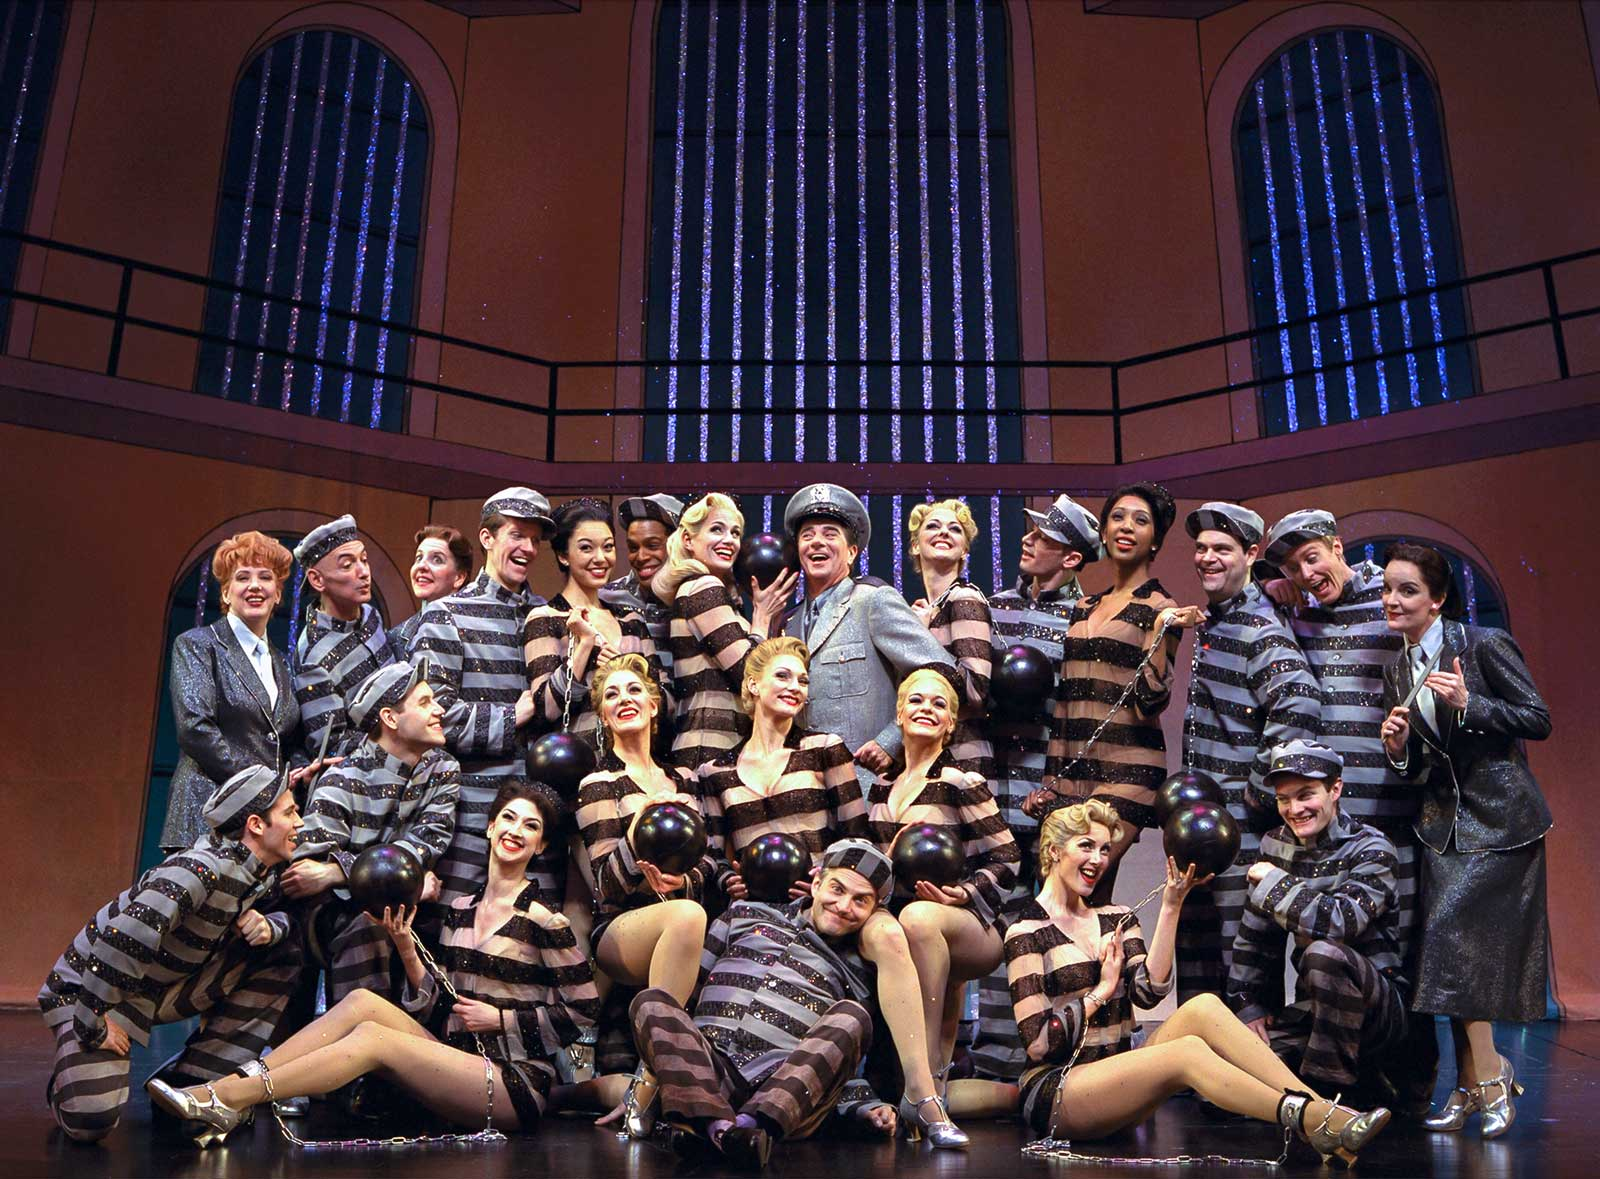 """Cady Huffman, Gary Beach, and the Original Broadway Cast of The Producers in """"Prisoners Of Love"""". All are dressed in jail costumes with head warden and two matrons."""